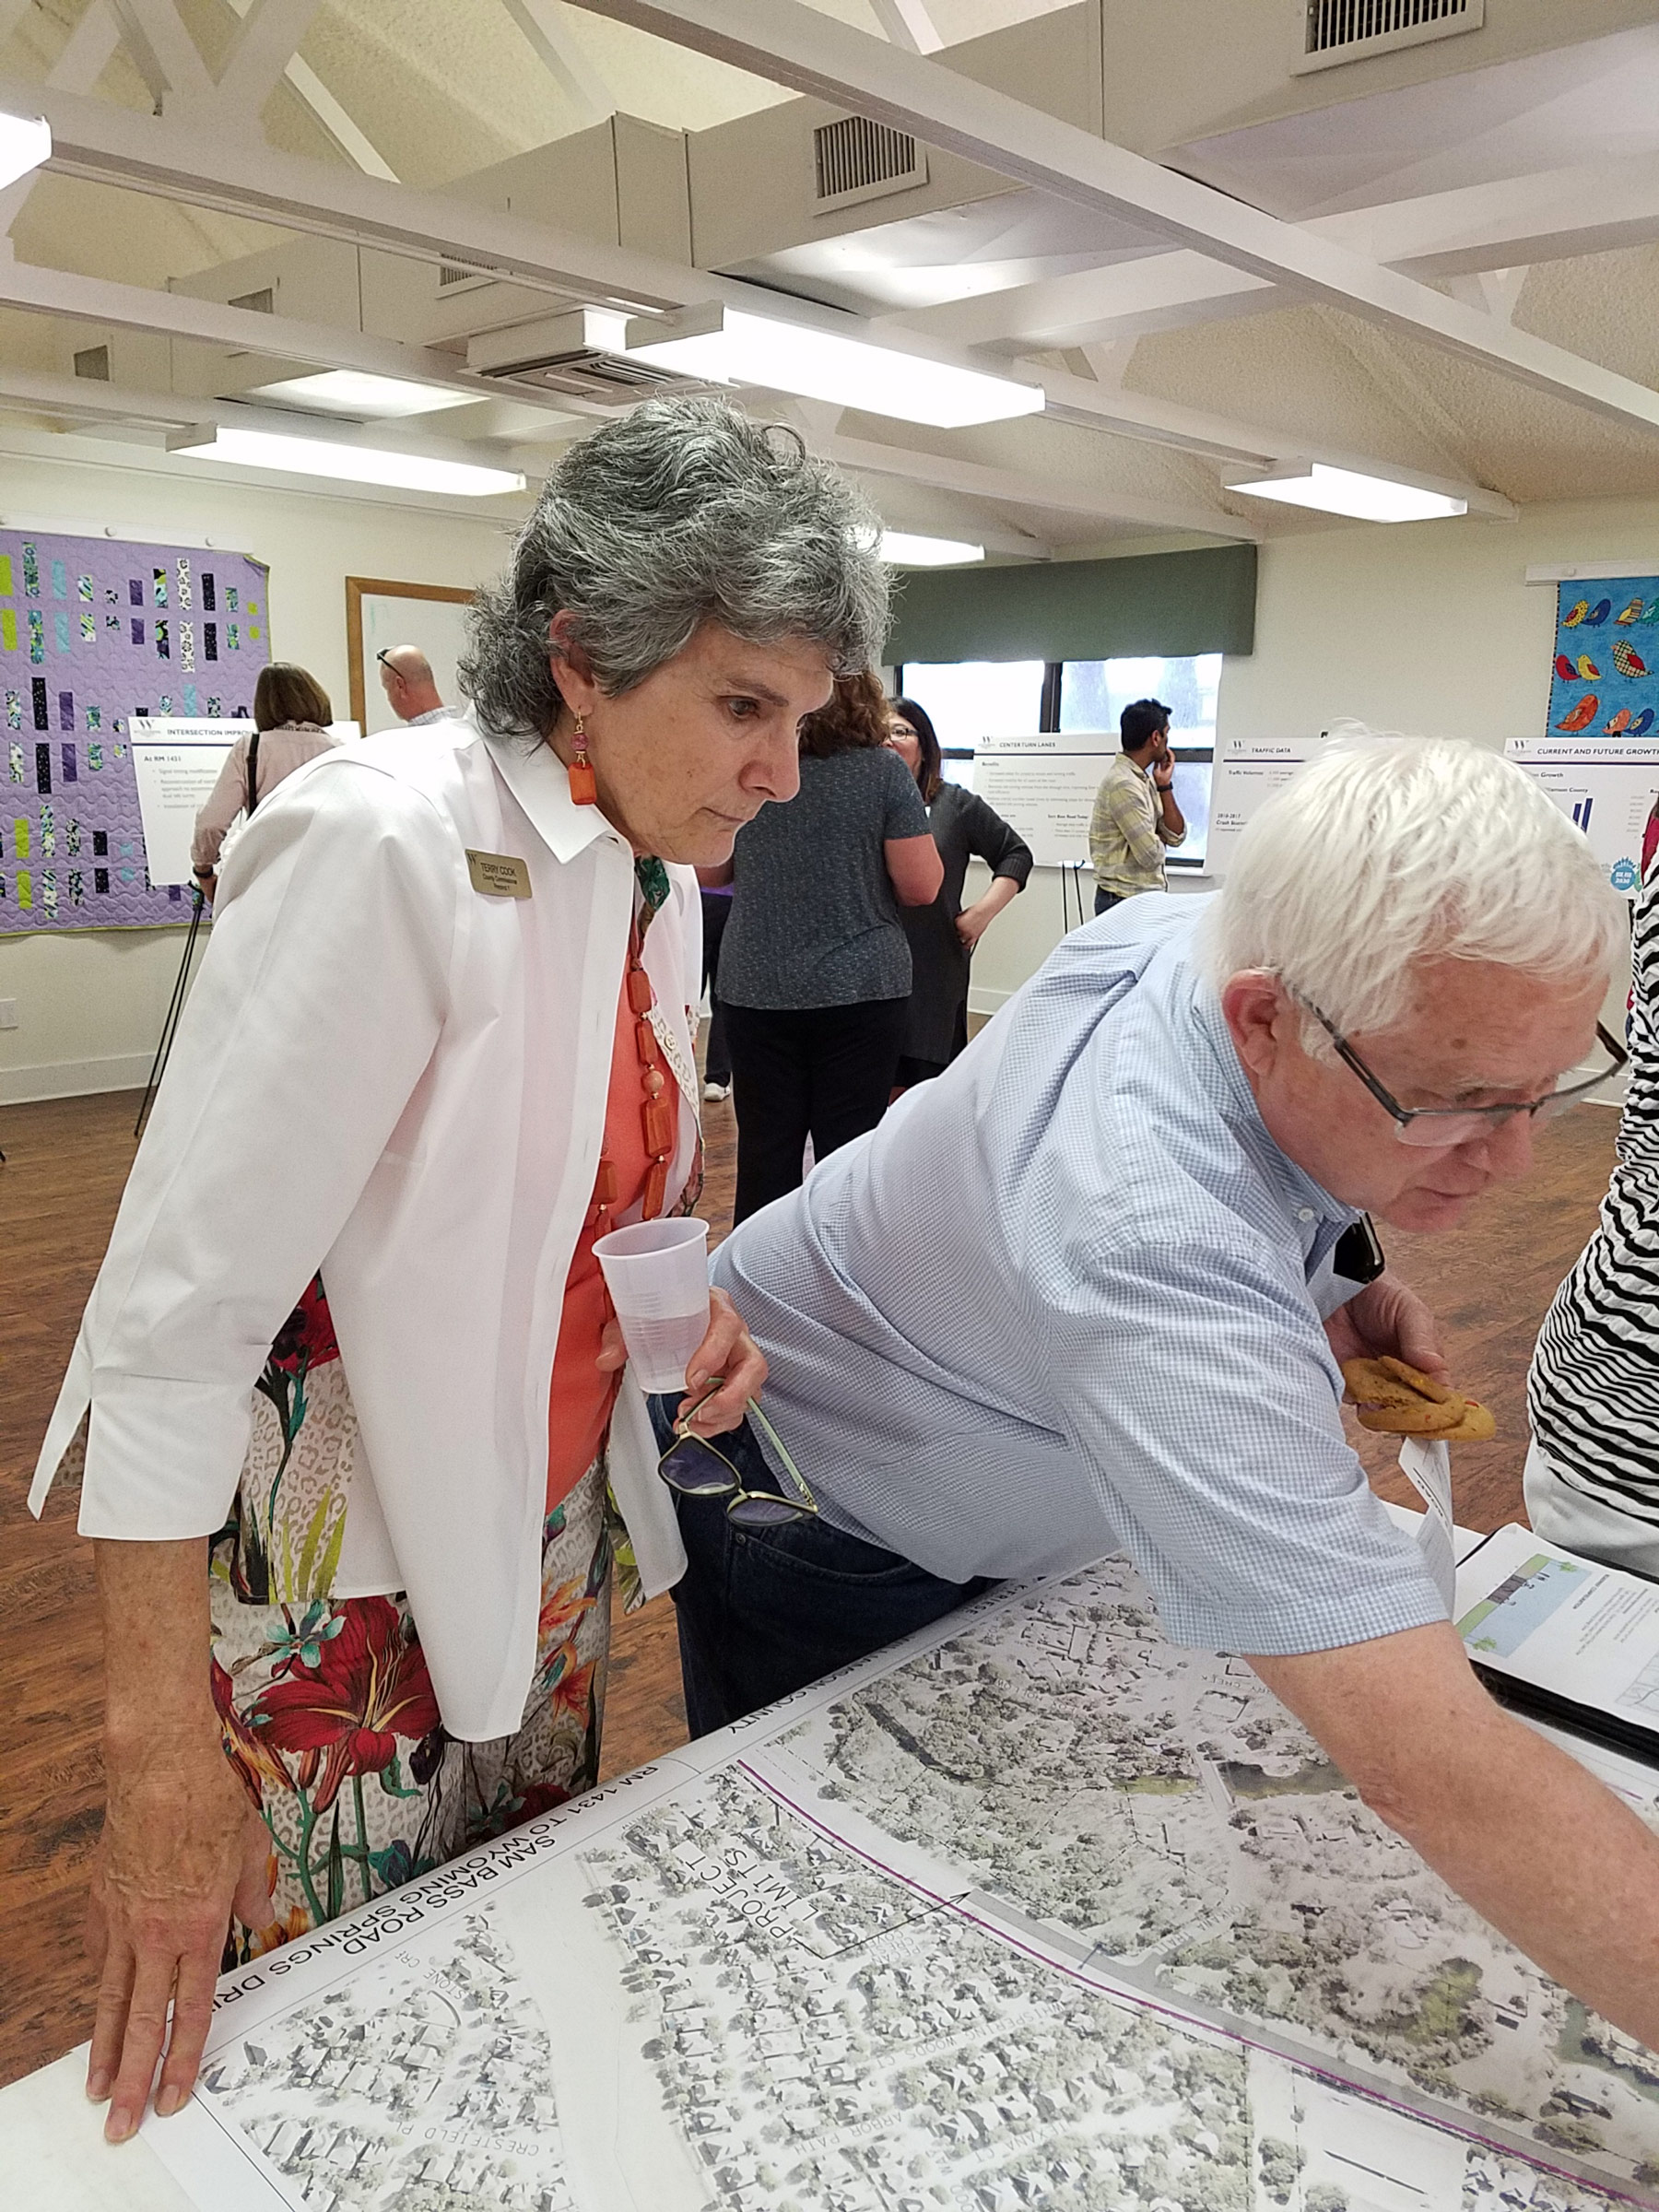 Commissioner Cook studies a map of the proposed Corridor H improvement with a resident.